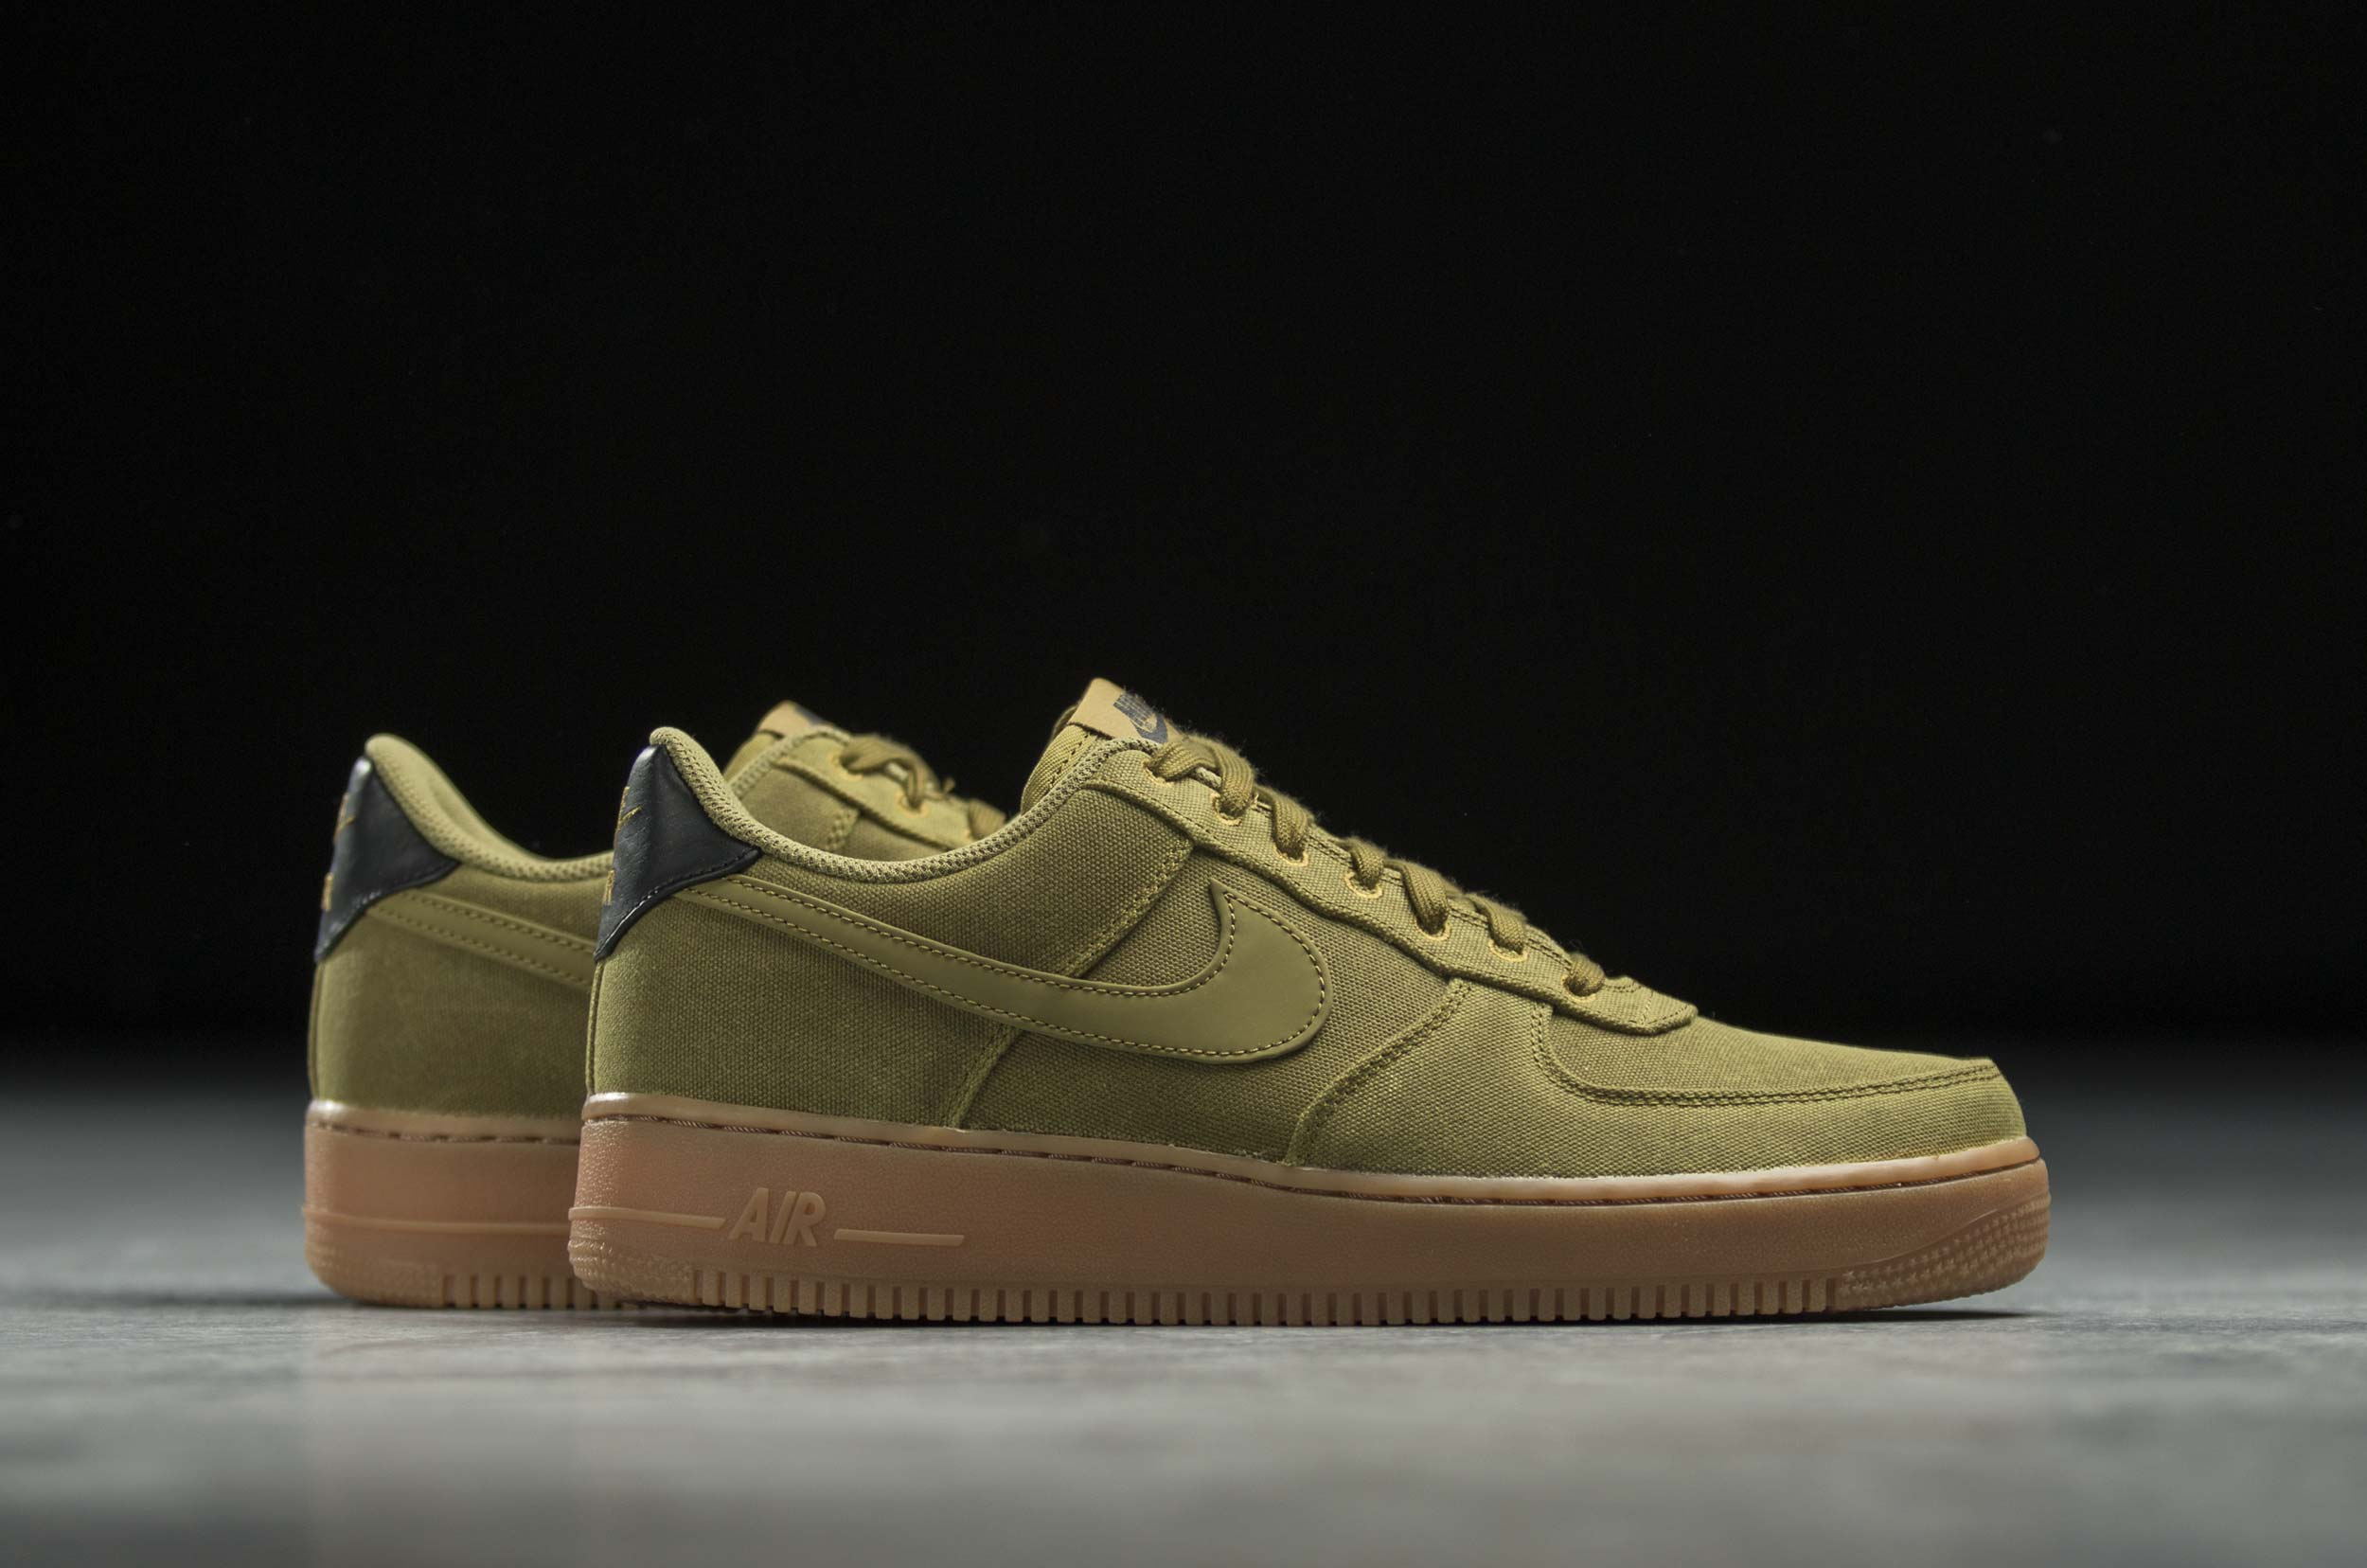 NIKE AIR FORCE 1 '07 LV8 STYLE AQ0117-300 Χακί